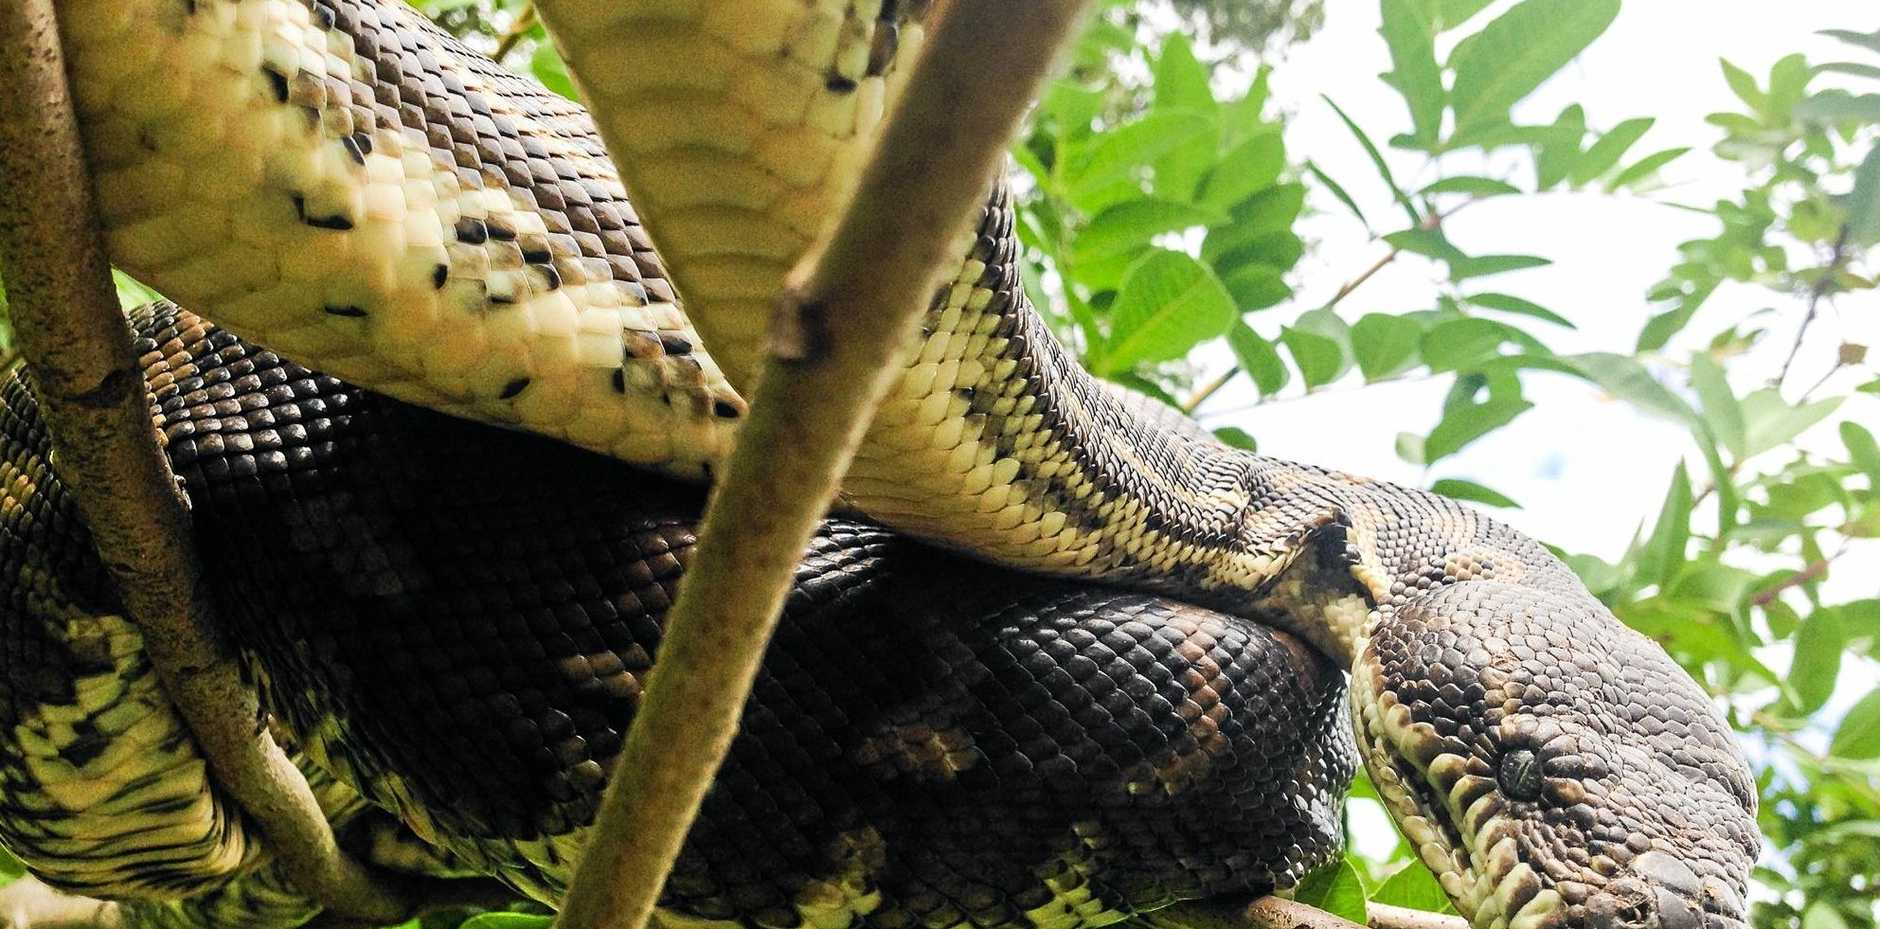 A carpet python spotted in a tree in Nambour.